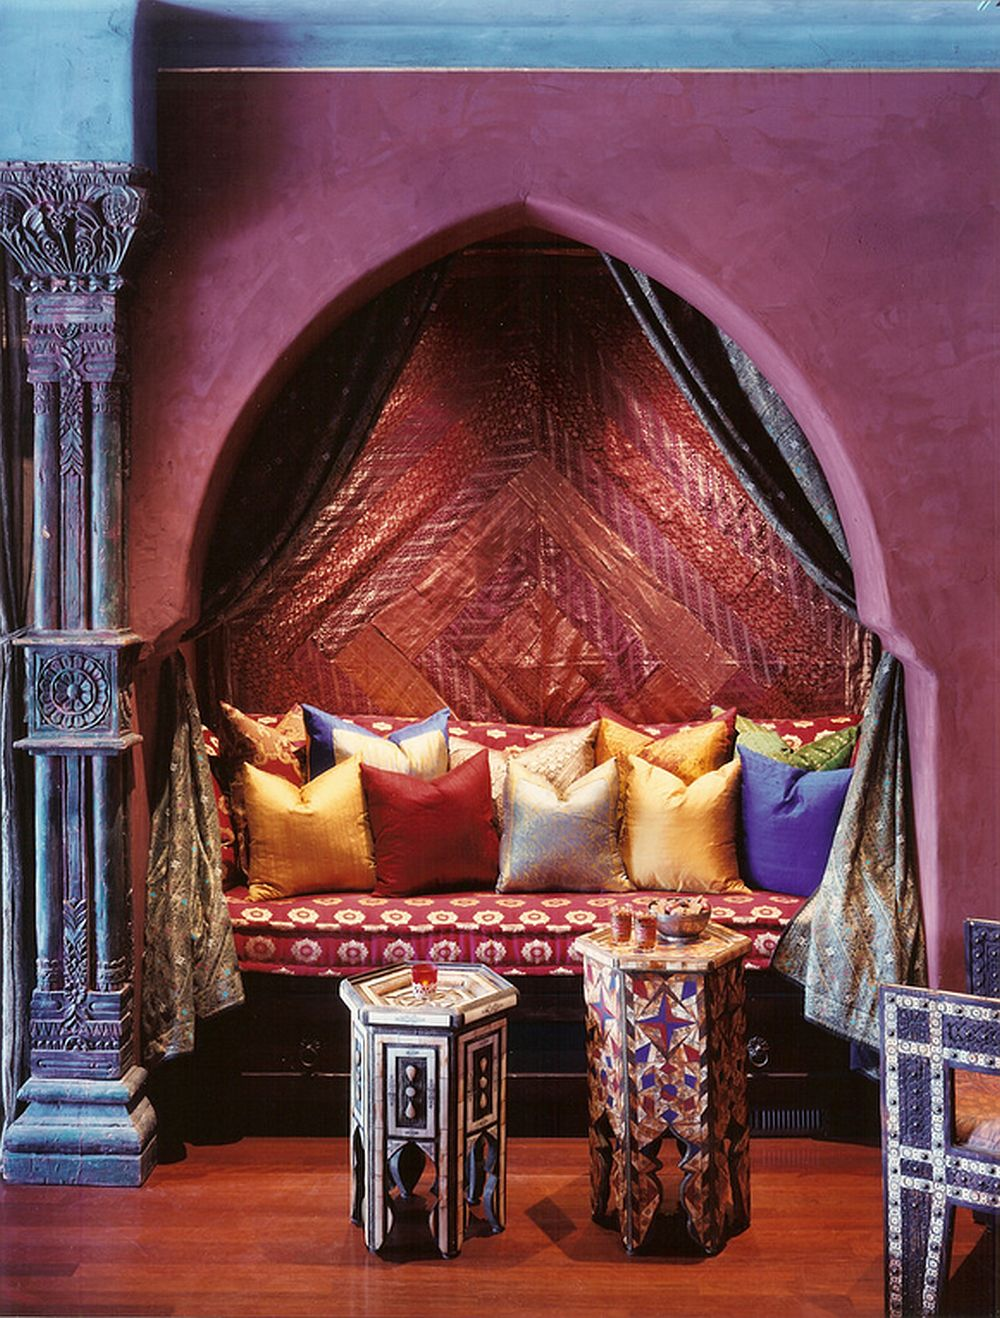 adelaparvu.com despre casa in stil marocan, maroccan kasbah, design interior Barry Johnson, arh Louie Leu, Foto Sharon Risedorph (5)